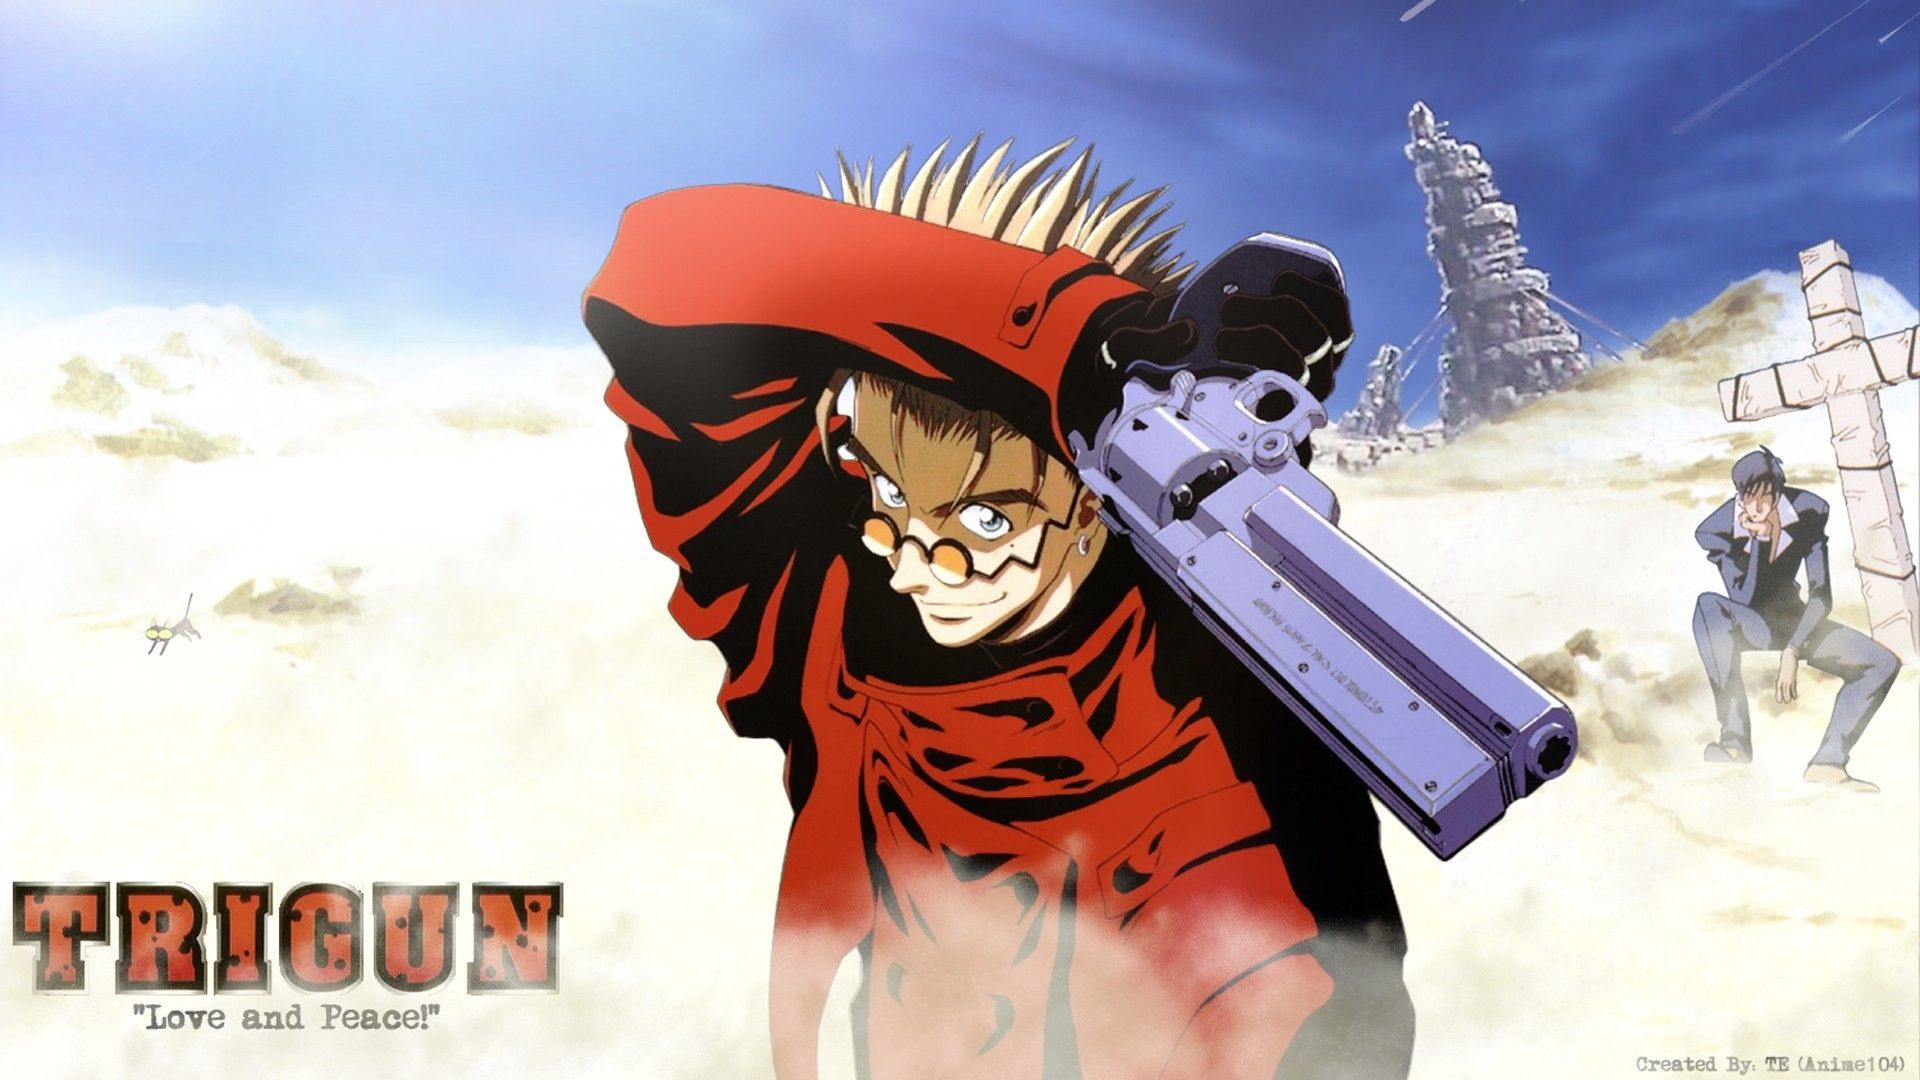 Res 1920x1080 Trigun Wallpapers For Iphone 5 Wtg20064782 Trigun Anime Anime Images